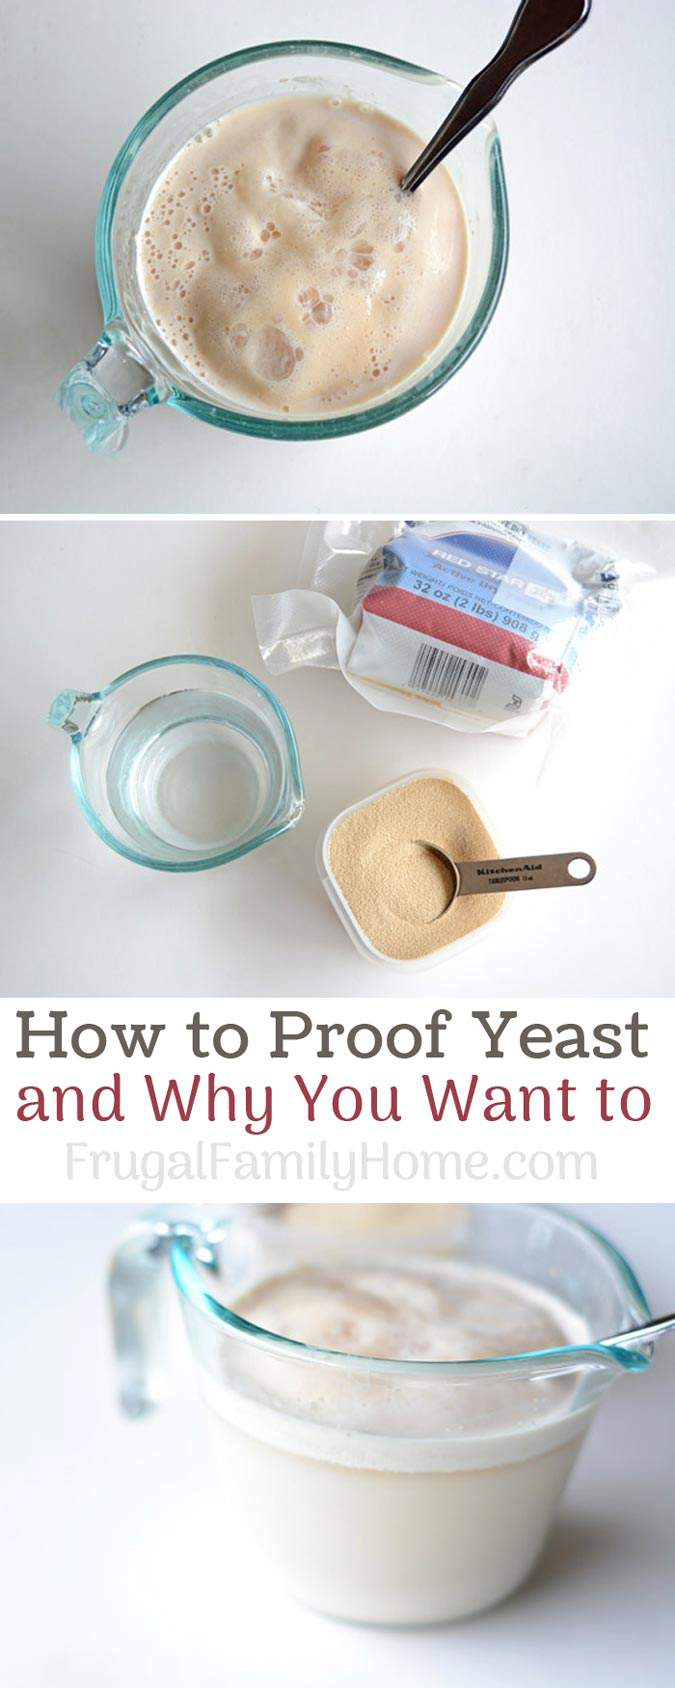 Bread Baking 101, How to proof yeast and why you want to. Learn why it's important to proof when working with yeast. I've included a video too.